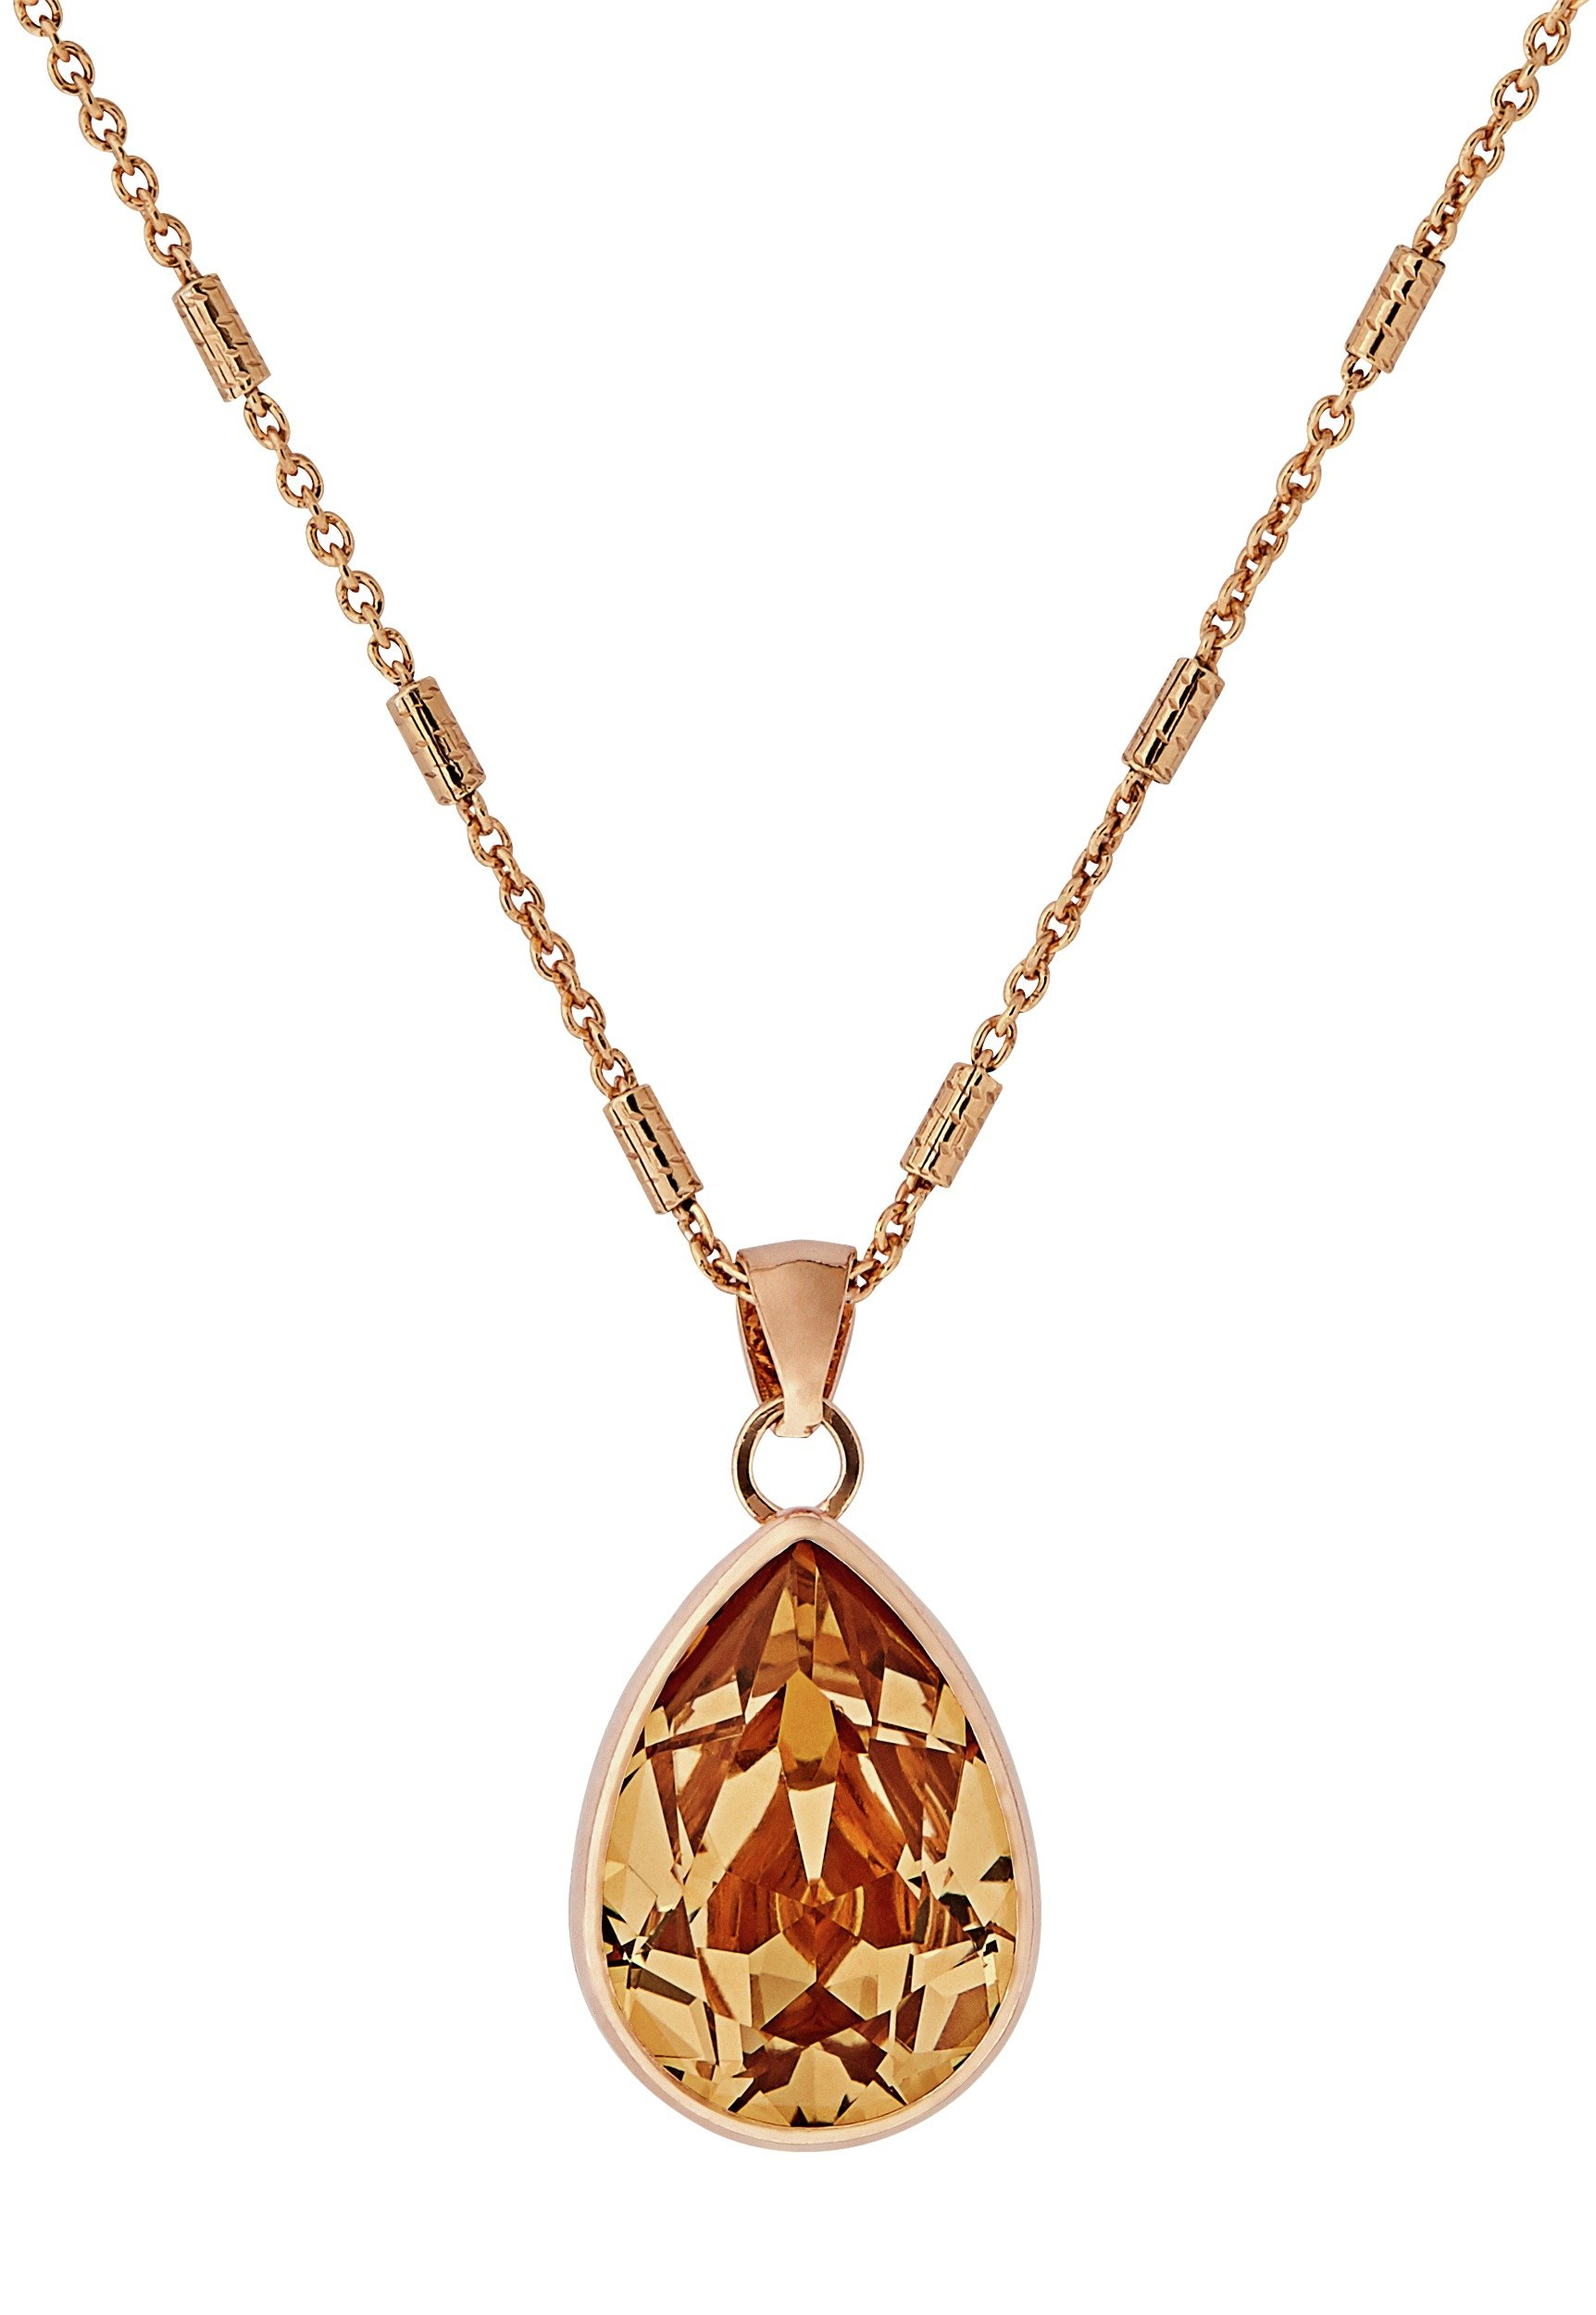 Image of Davvero Rose Gold Plated Silver Swarovski Crystal Pendant